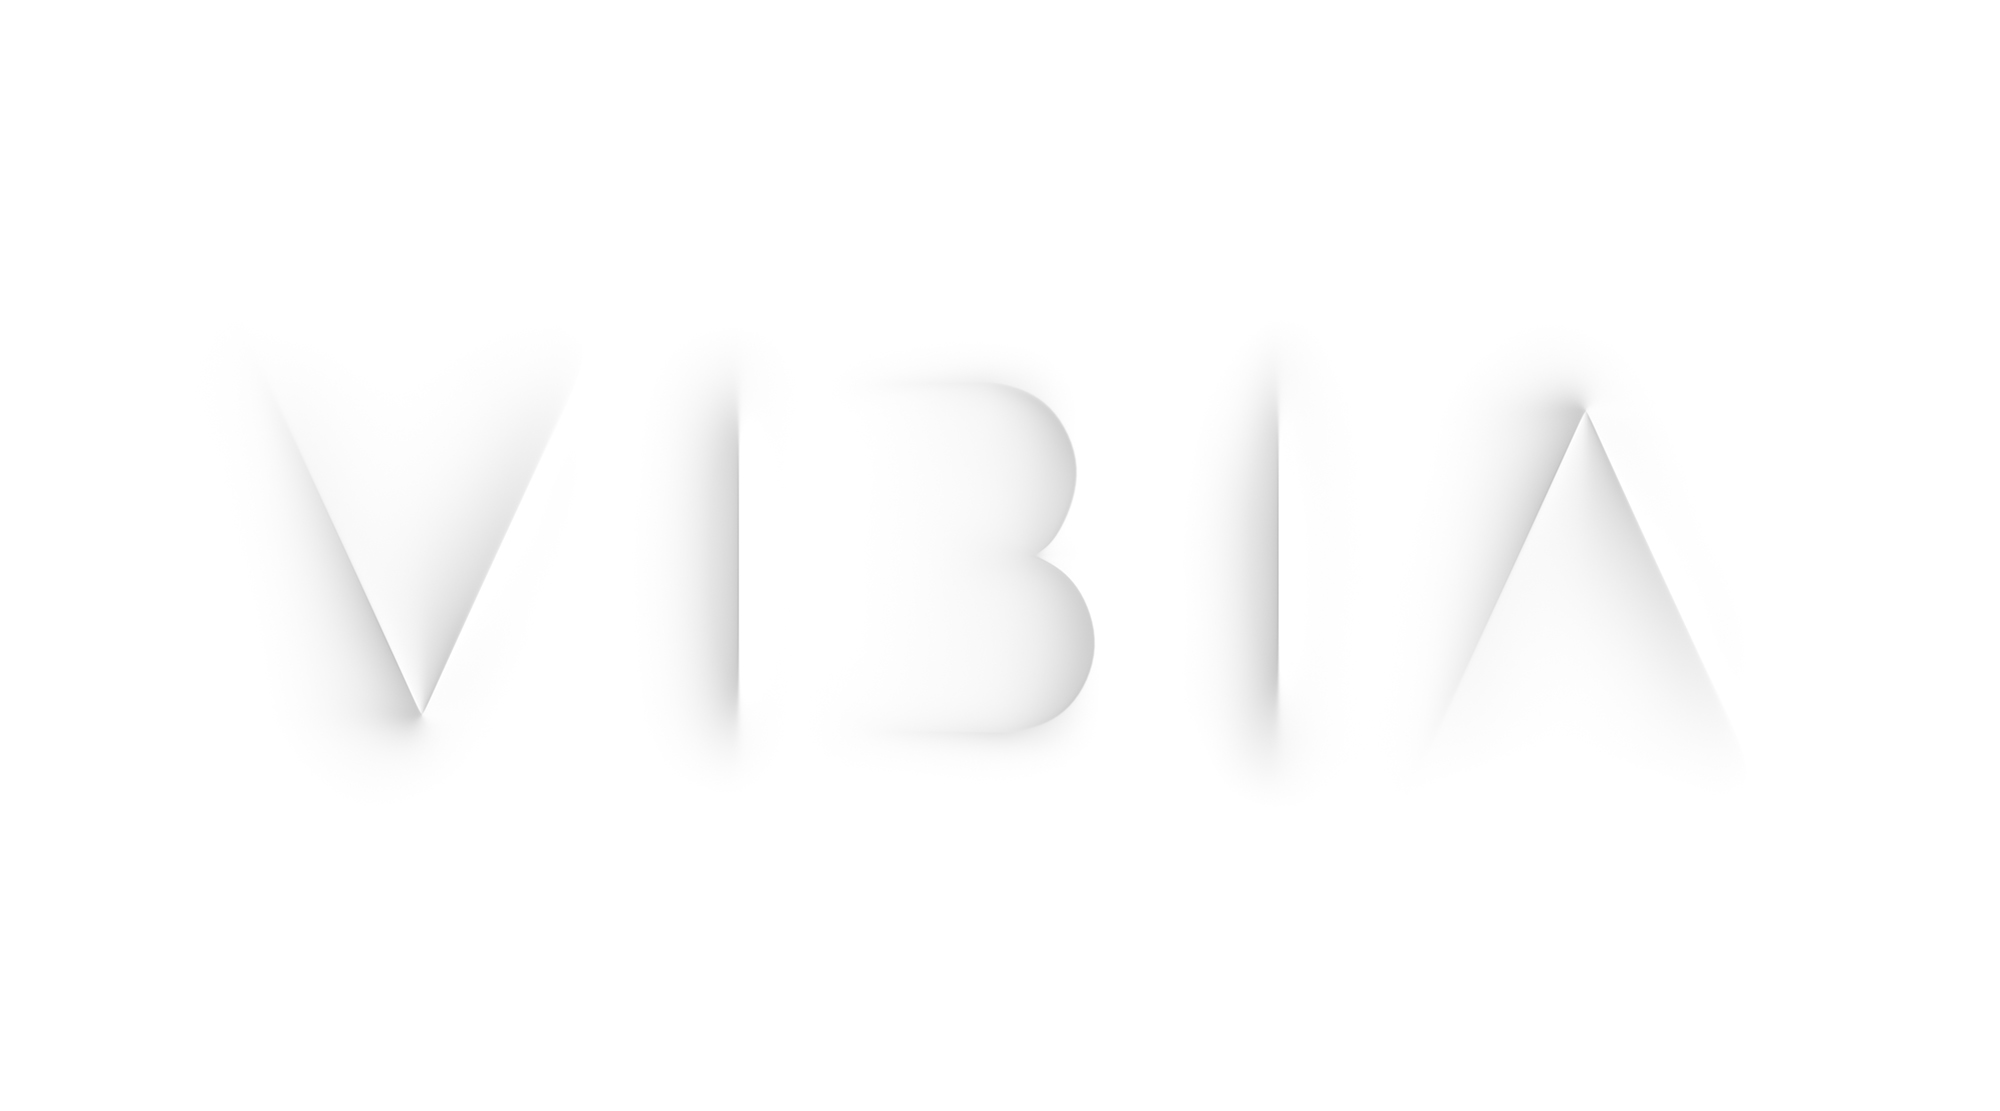 Visual identity and brand strategy for Vibia by Marina Willer, Pentagram.